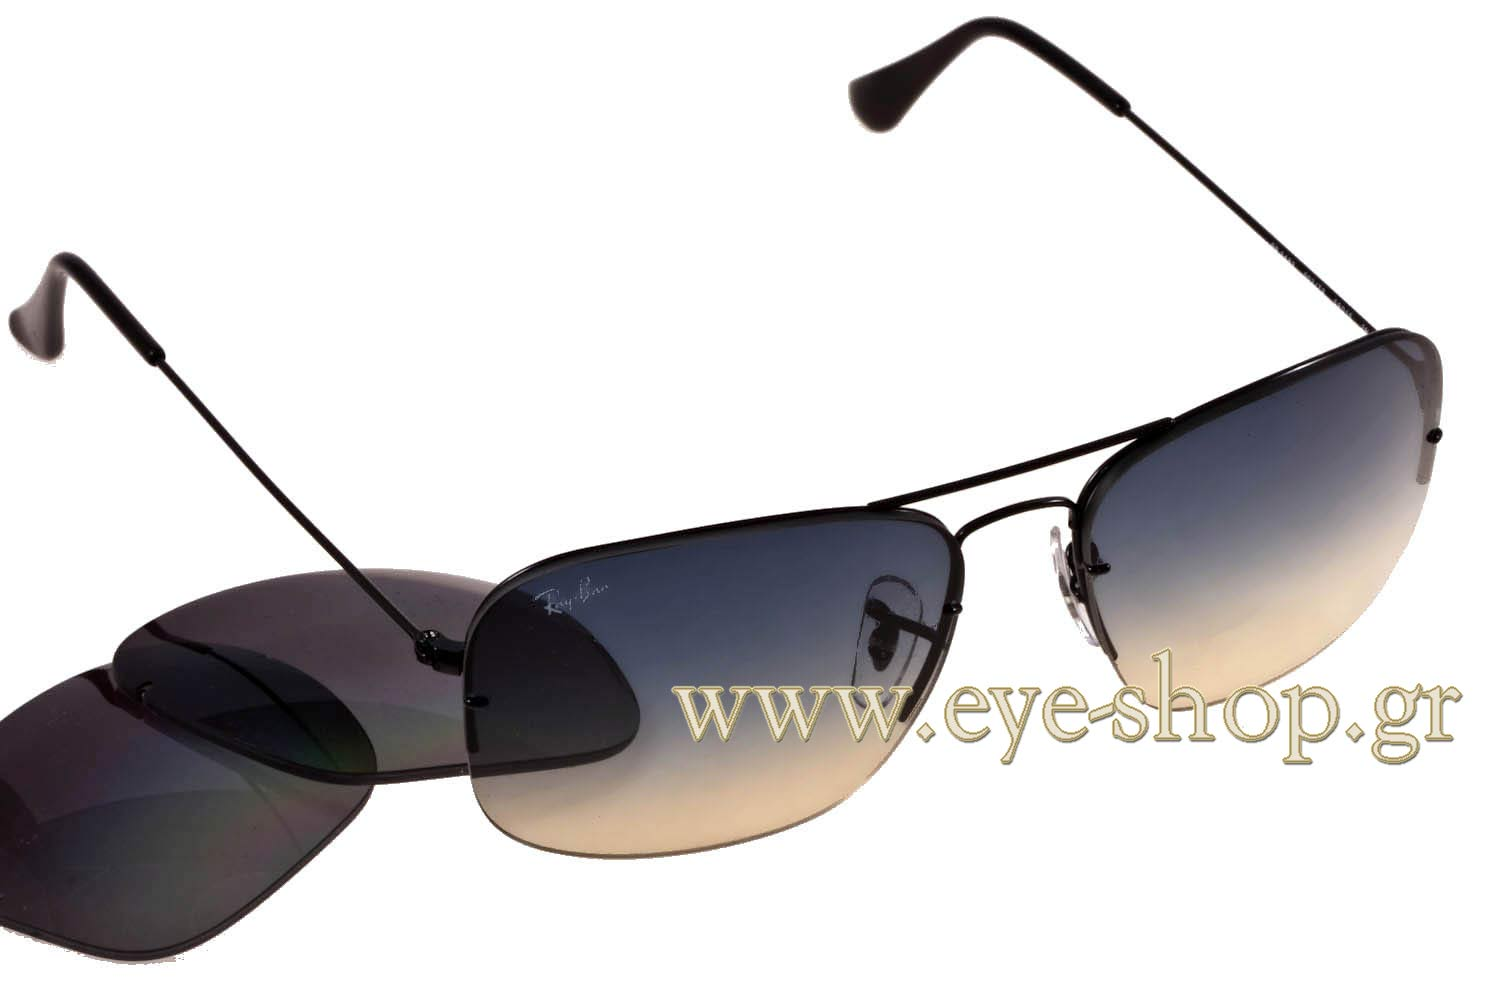 sale on ray ban sunglasses mot8  ray ban sunglasses sale in bahrain